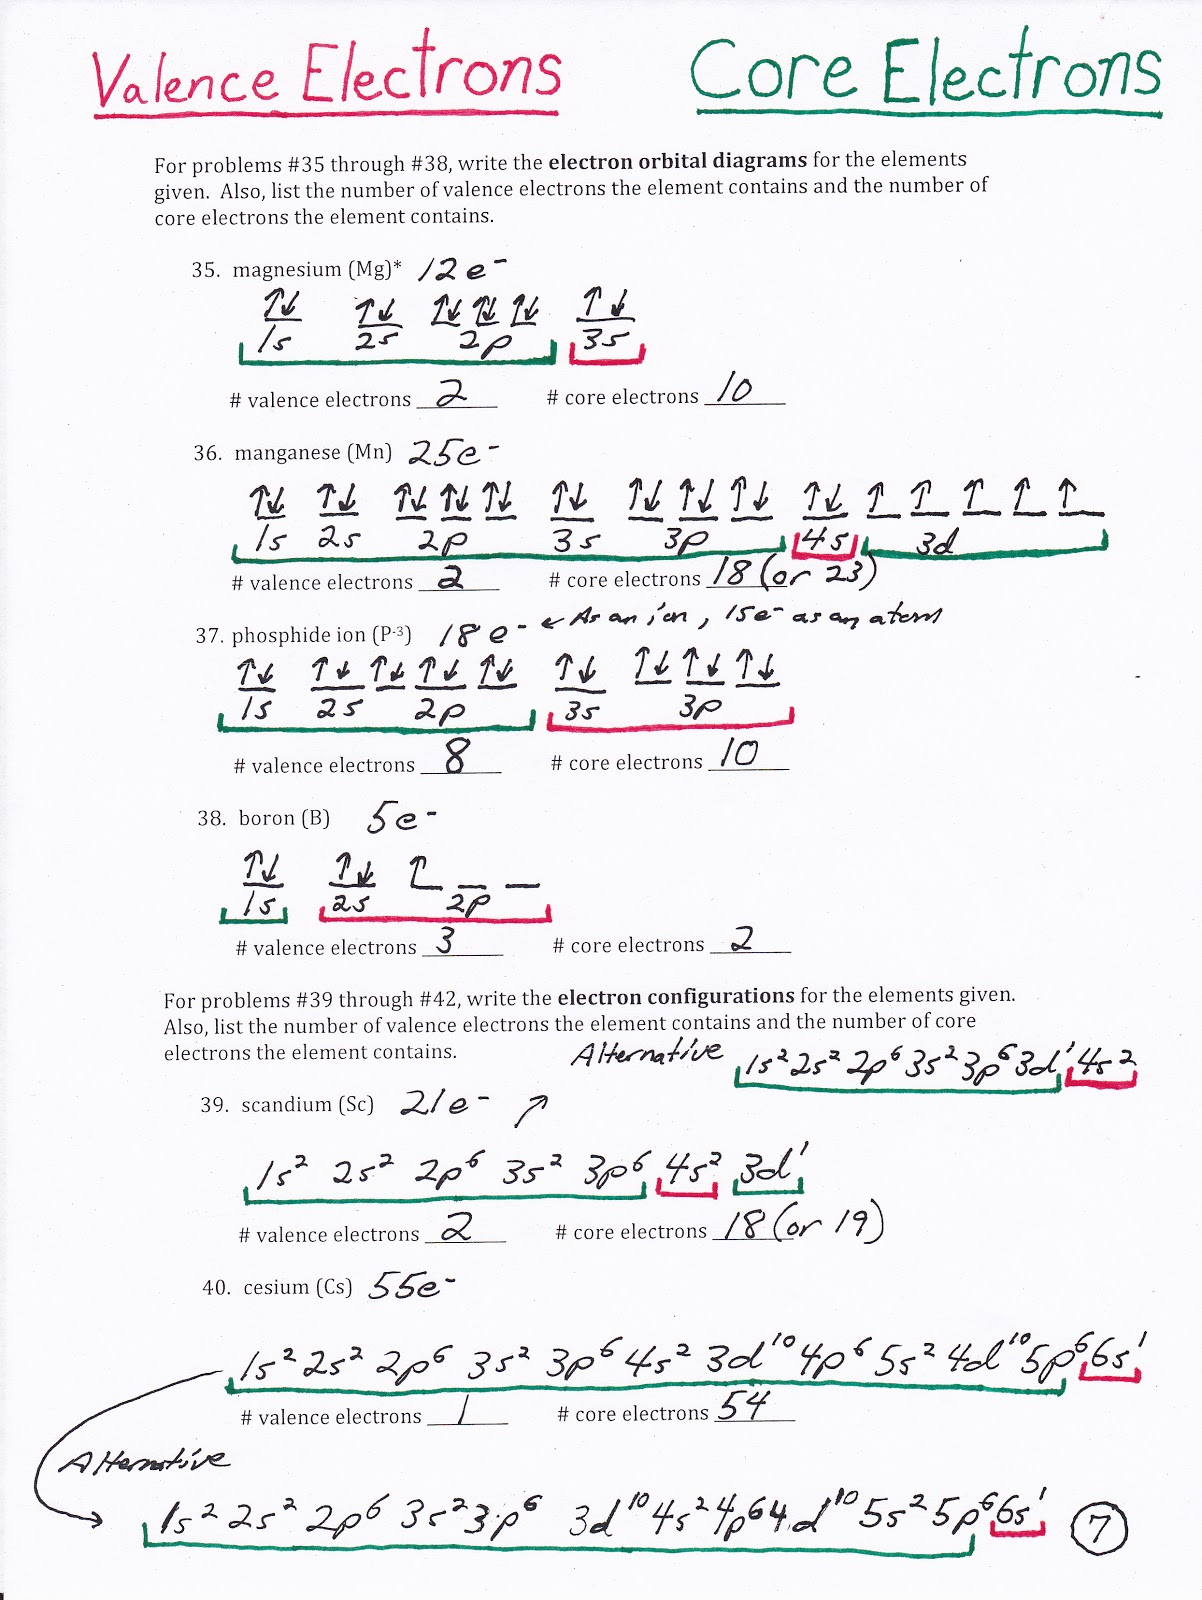 Worksheet Coulomb S Law Of Electric Forces Answers 1447247